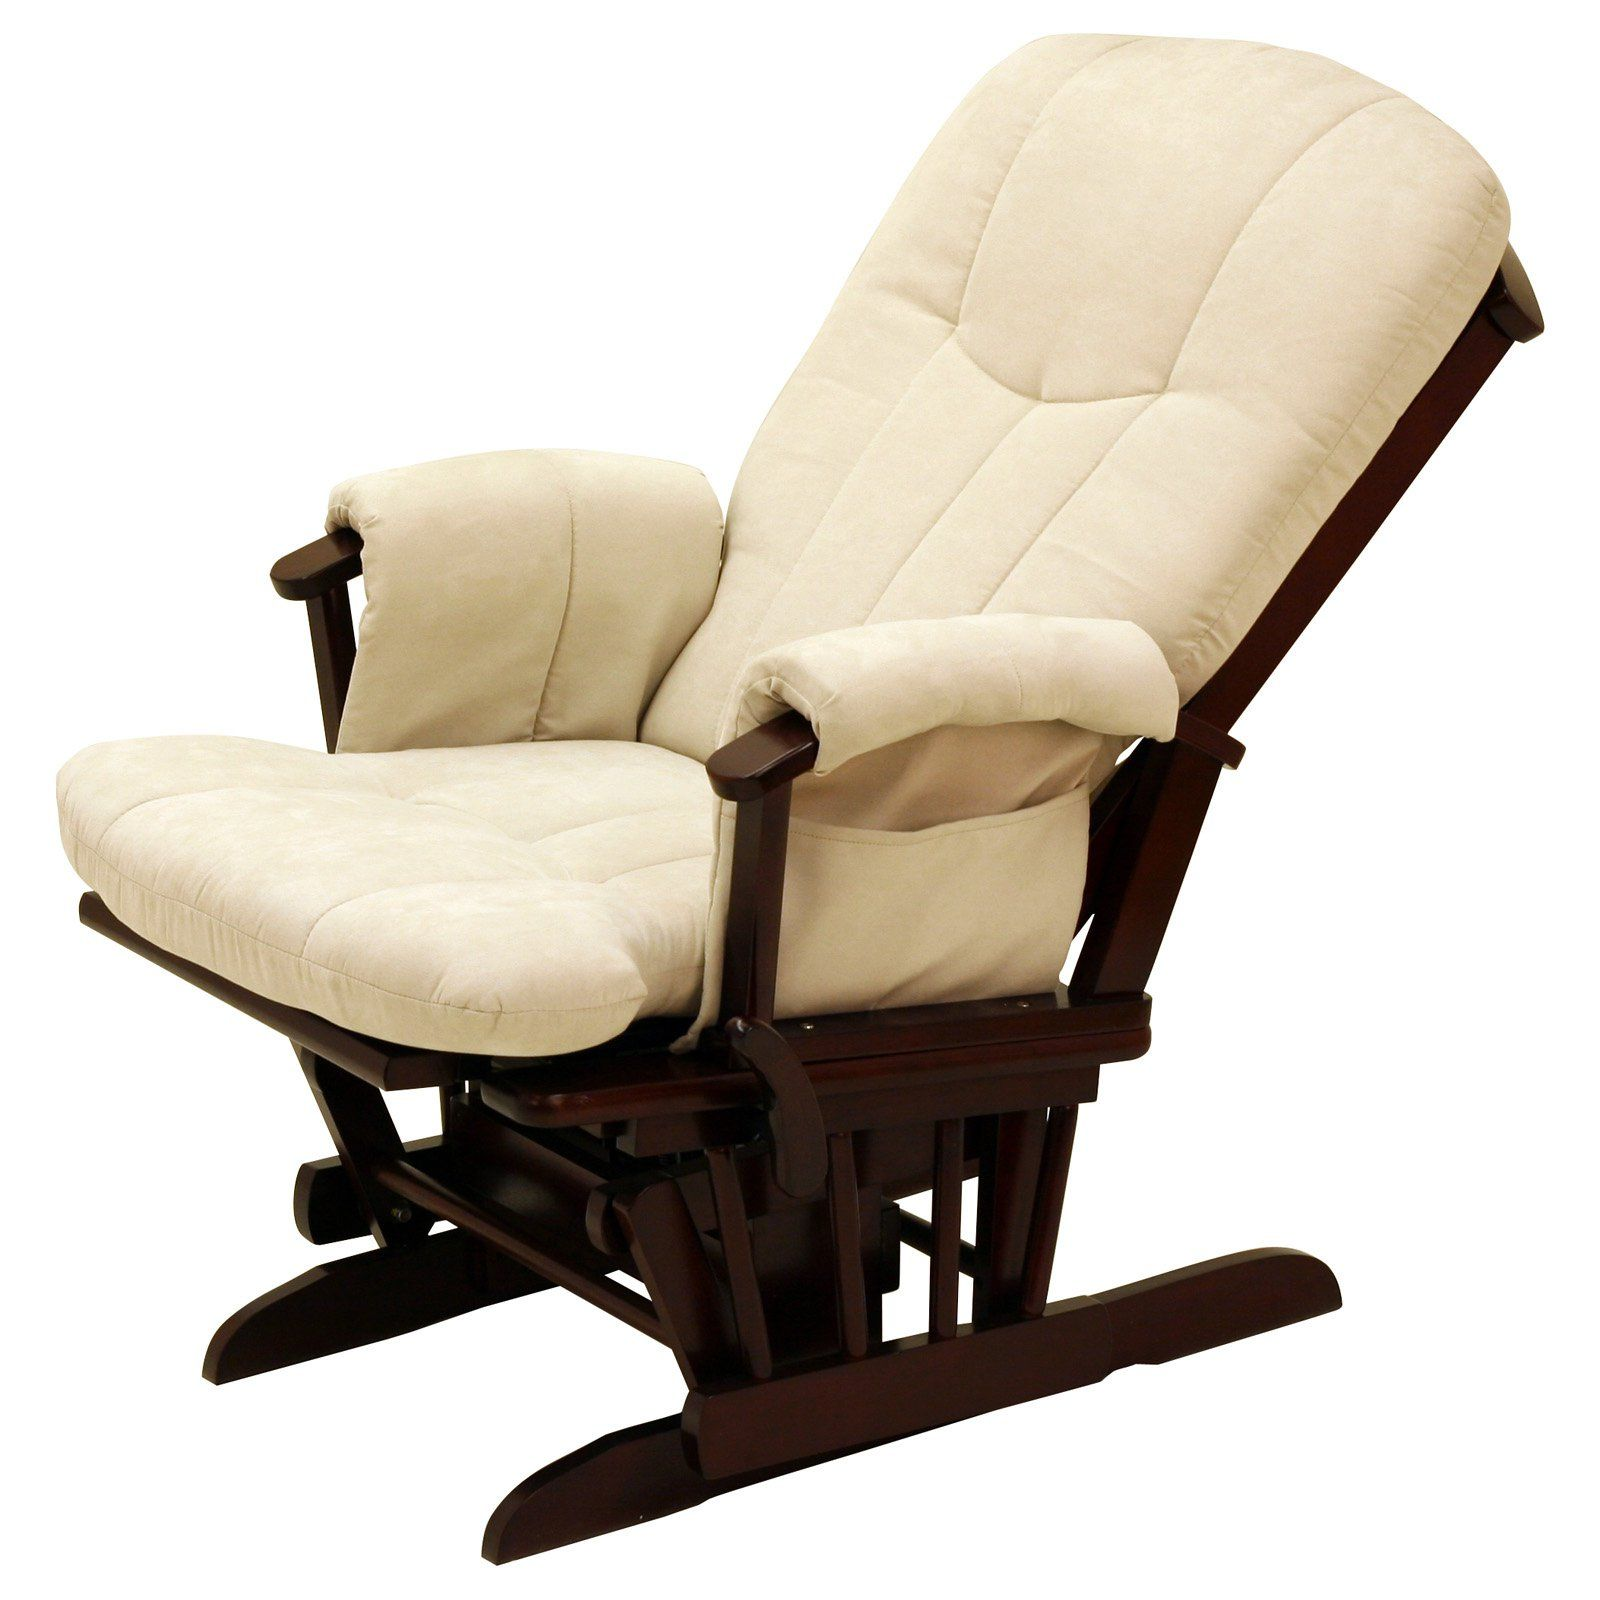 Best Recliner Chairs Canada Chair Cover Sashes Nursery Glider Thenurseries